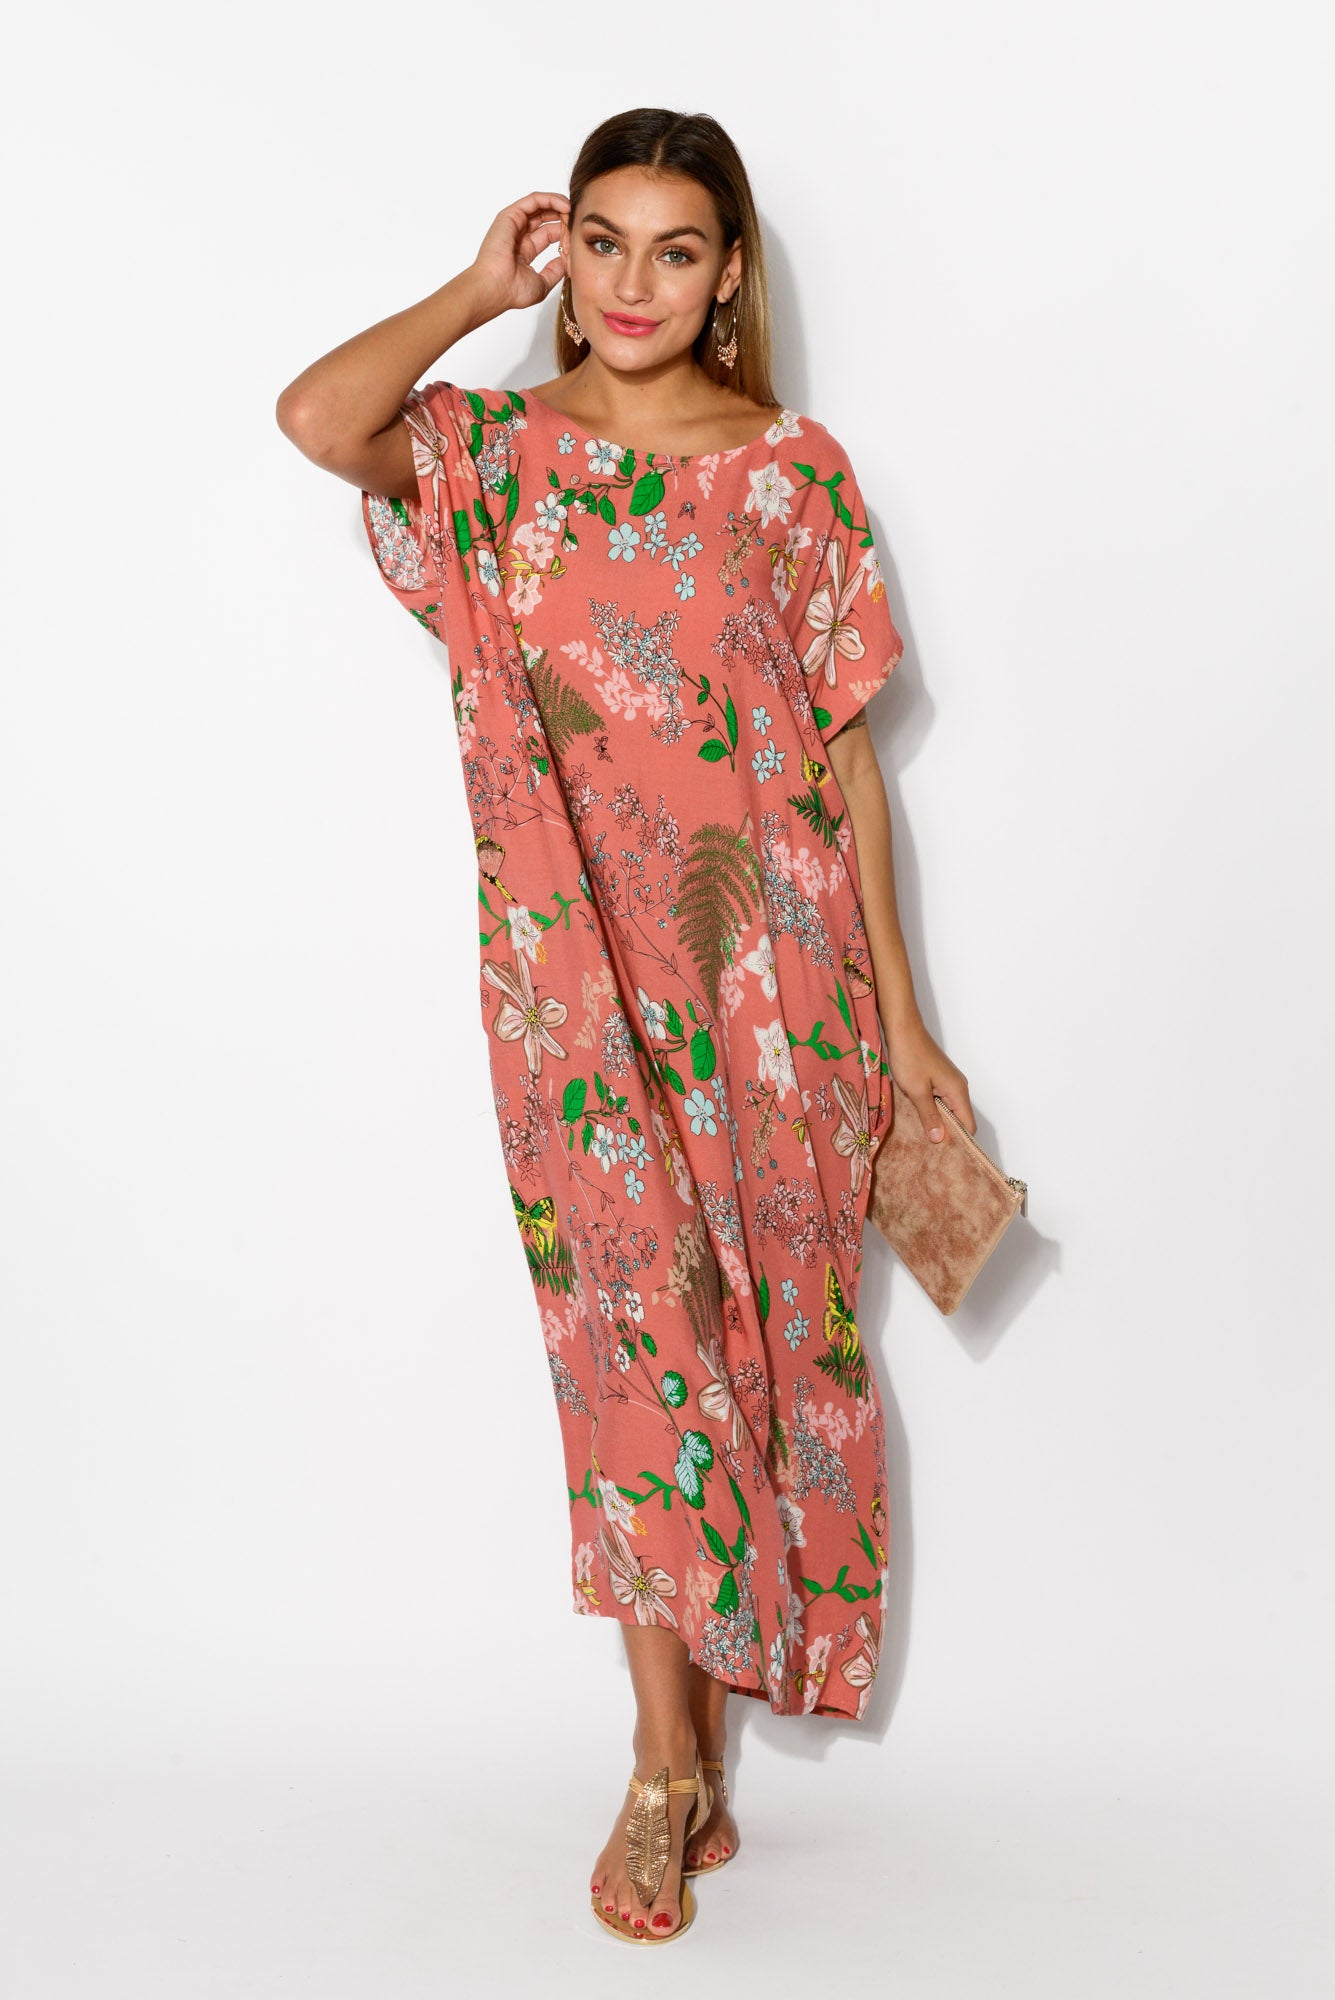 Claudia Pink Floral Maxi Dress - Blue Bungalow